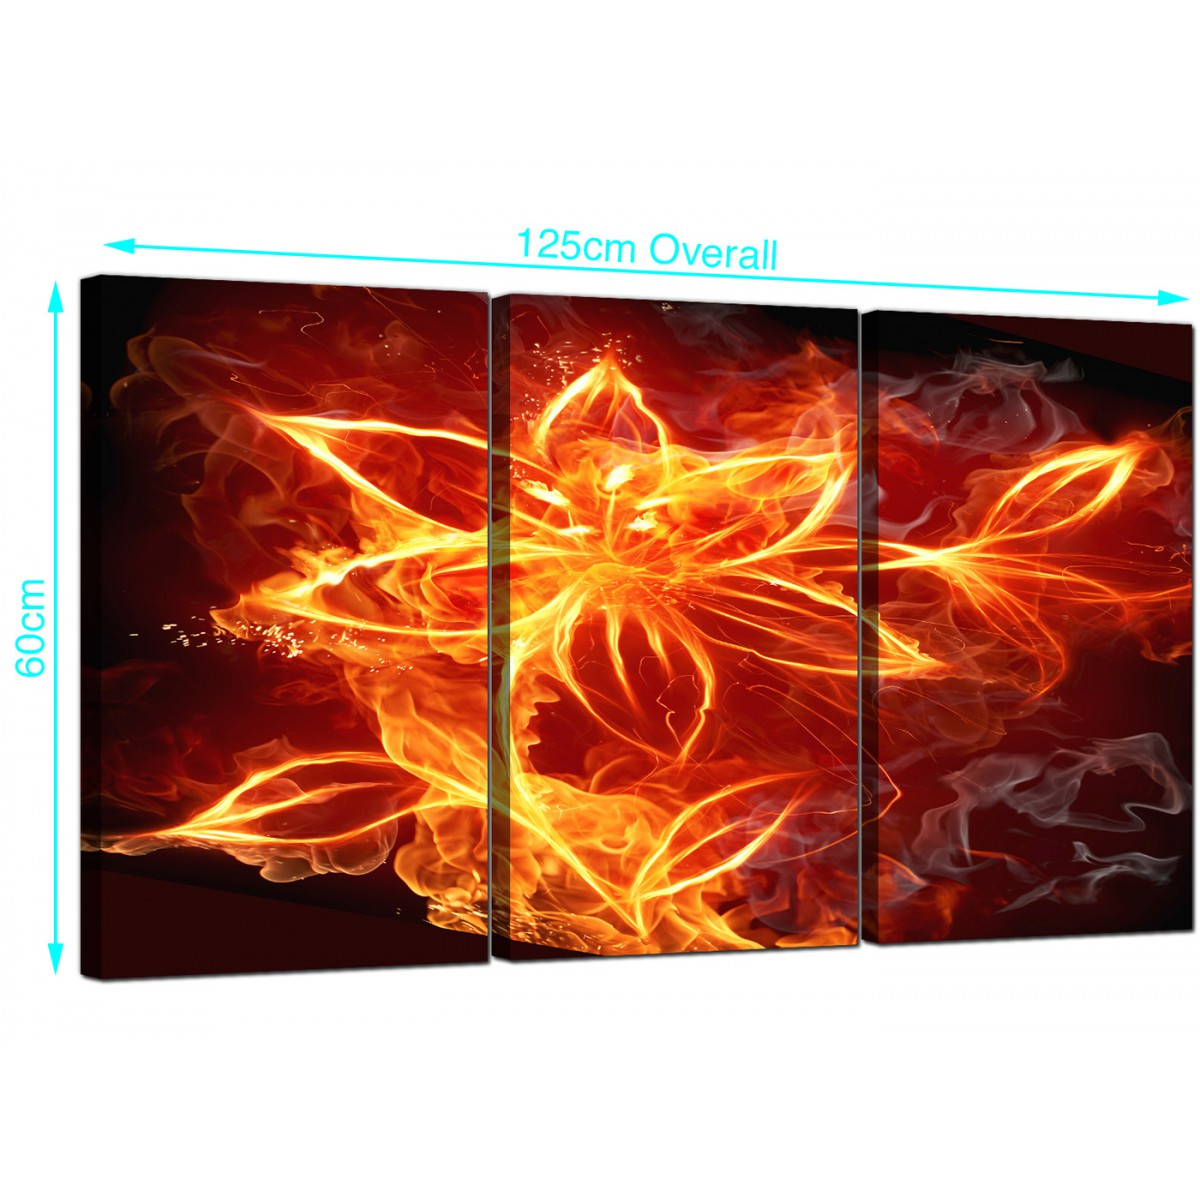 setoffireflowercanvaswallartorange - fire flower canvas wall art panel for your living room